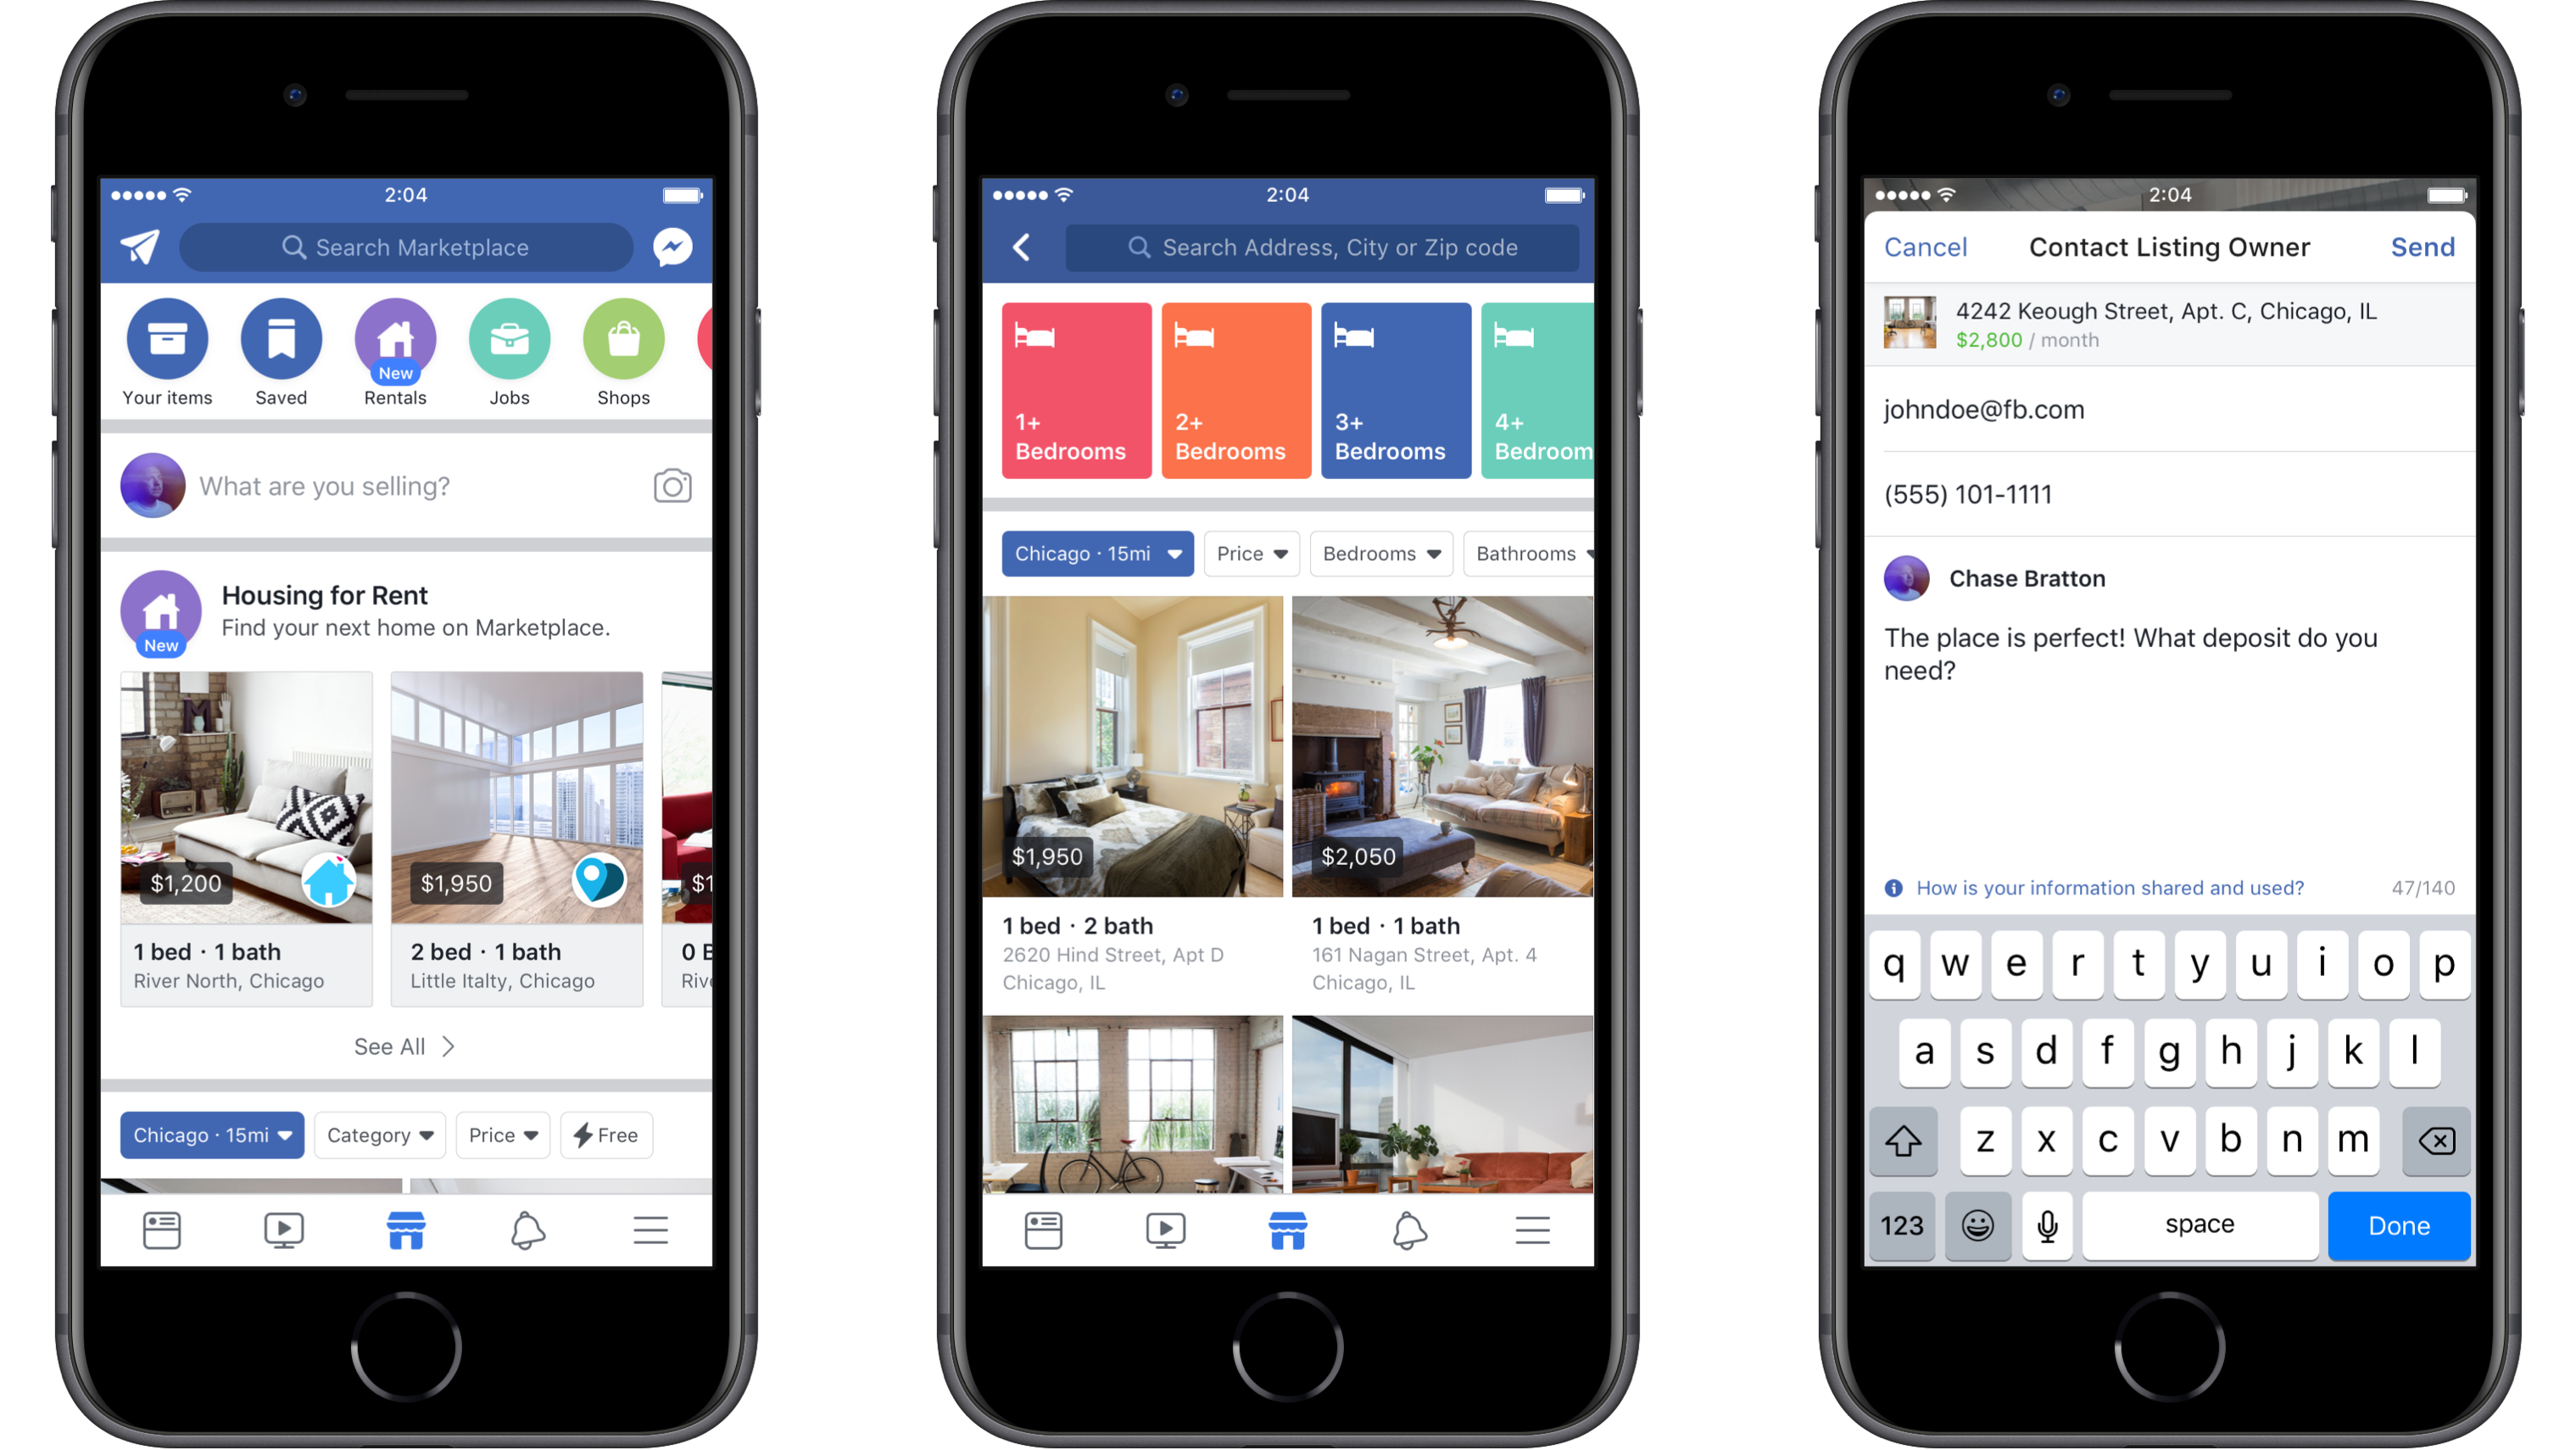 Facebook's Adding a New 'Rentals' Section to Marketplace, Expanding Opportunities | Social Media Today